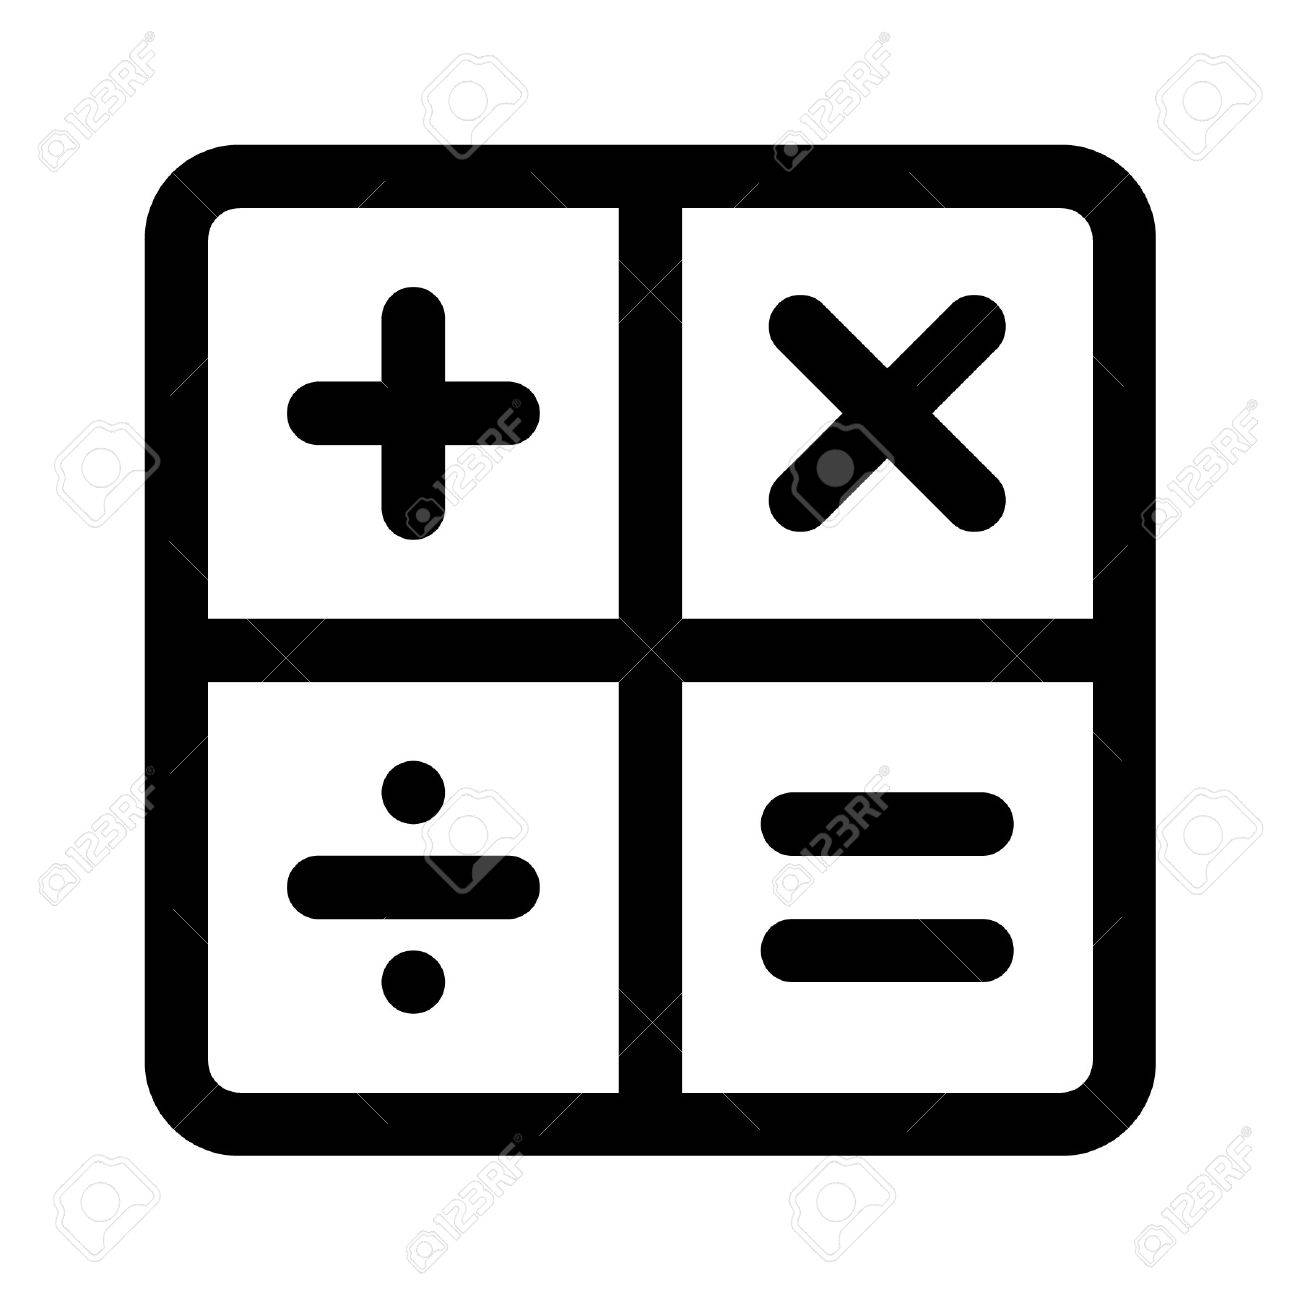 calculator arithmetic signs line art icon for apps royalty free